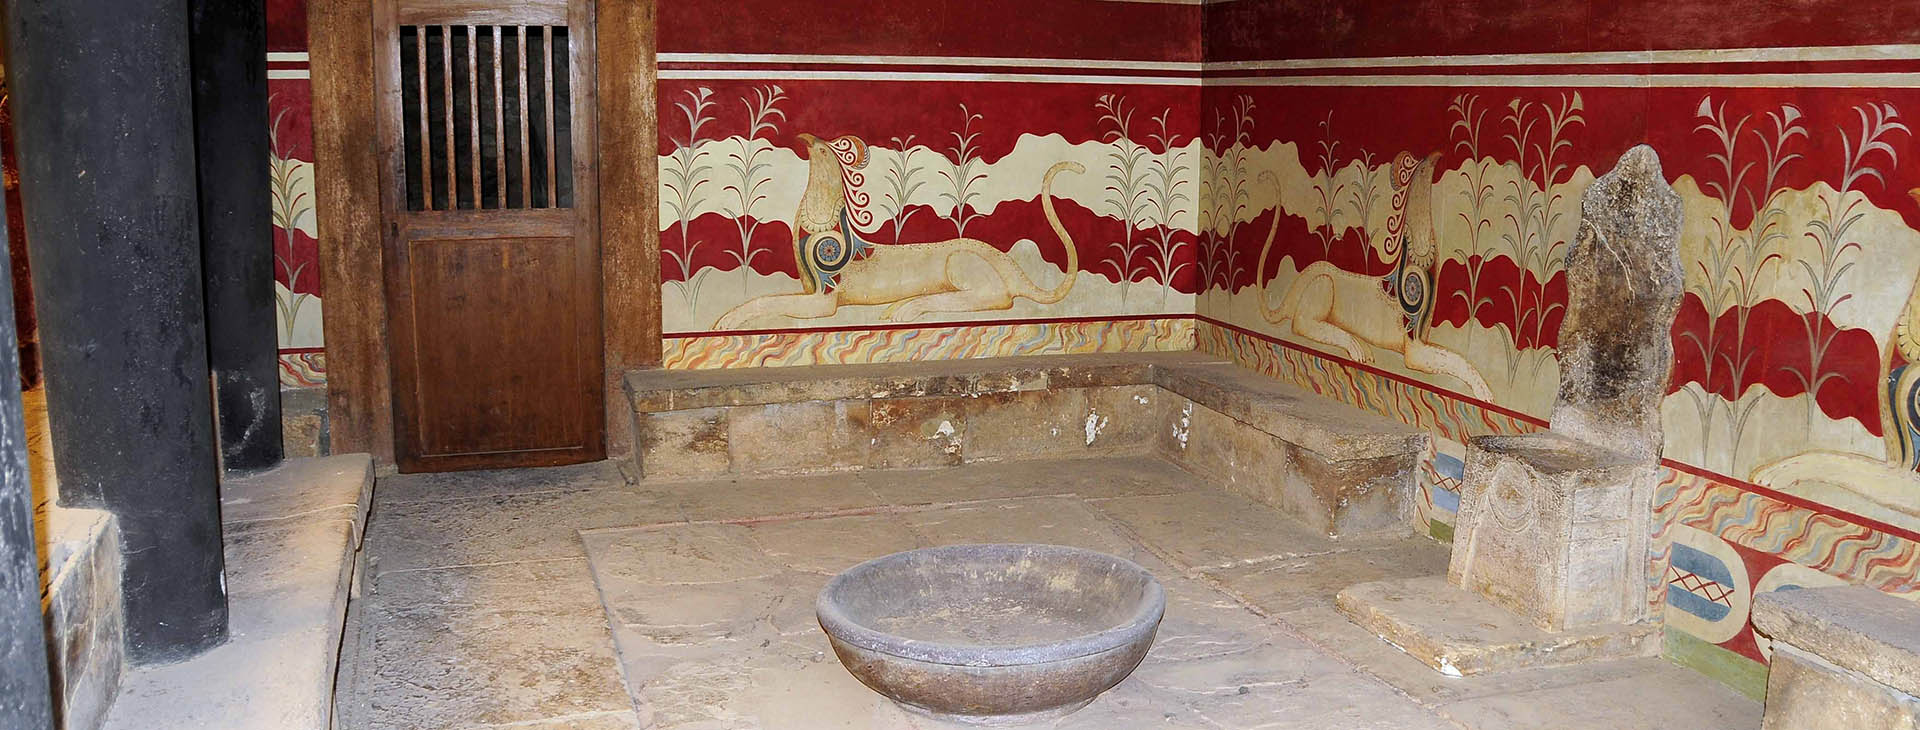 The throne room at the Minoan palace of Knossos, Heraklion